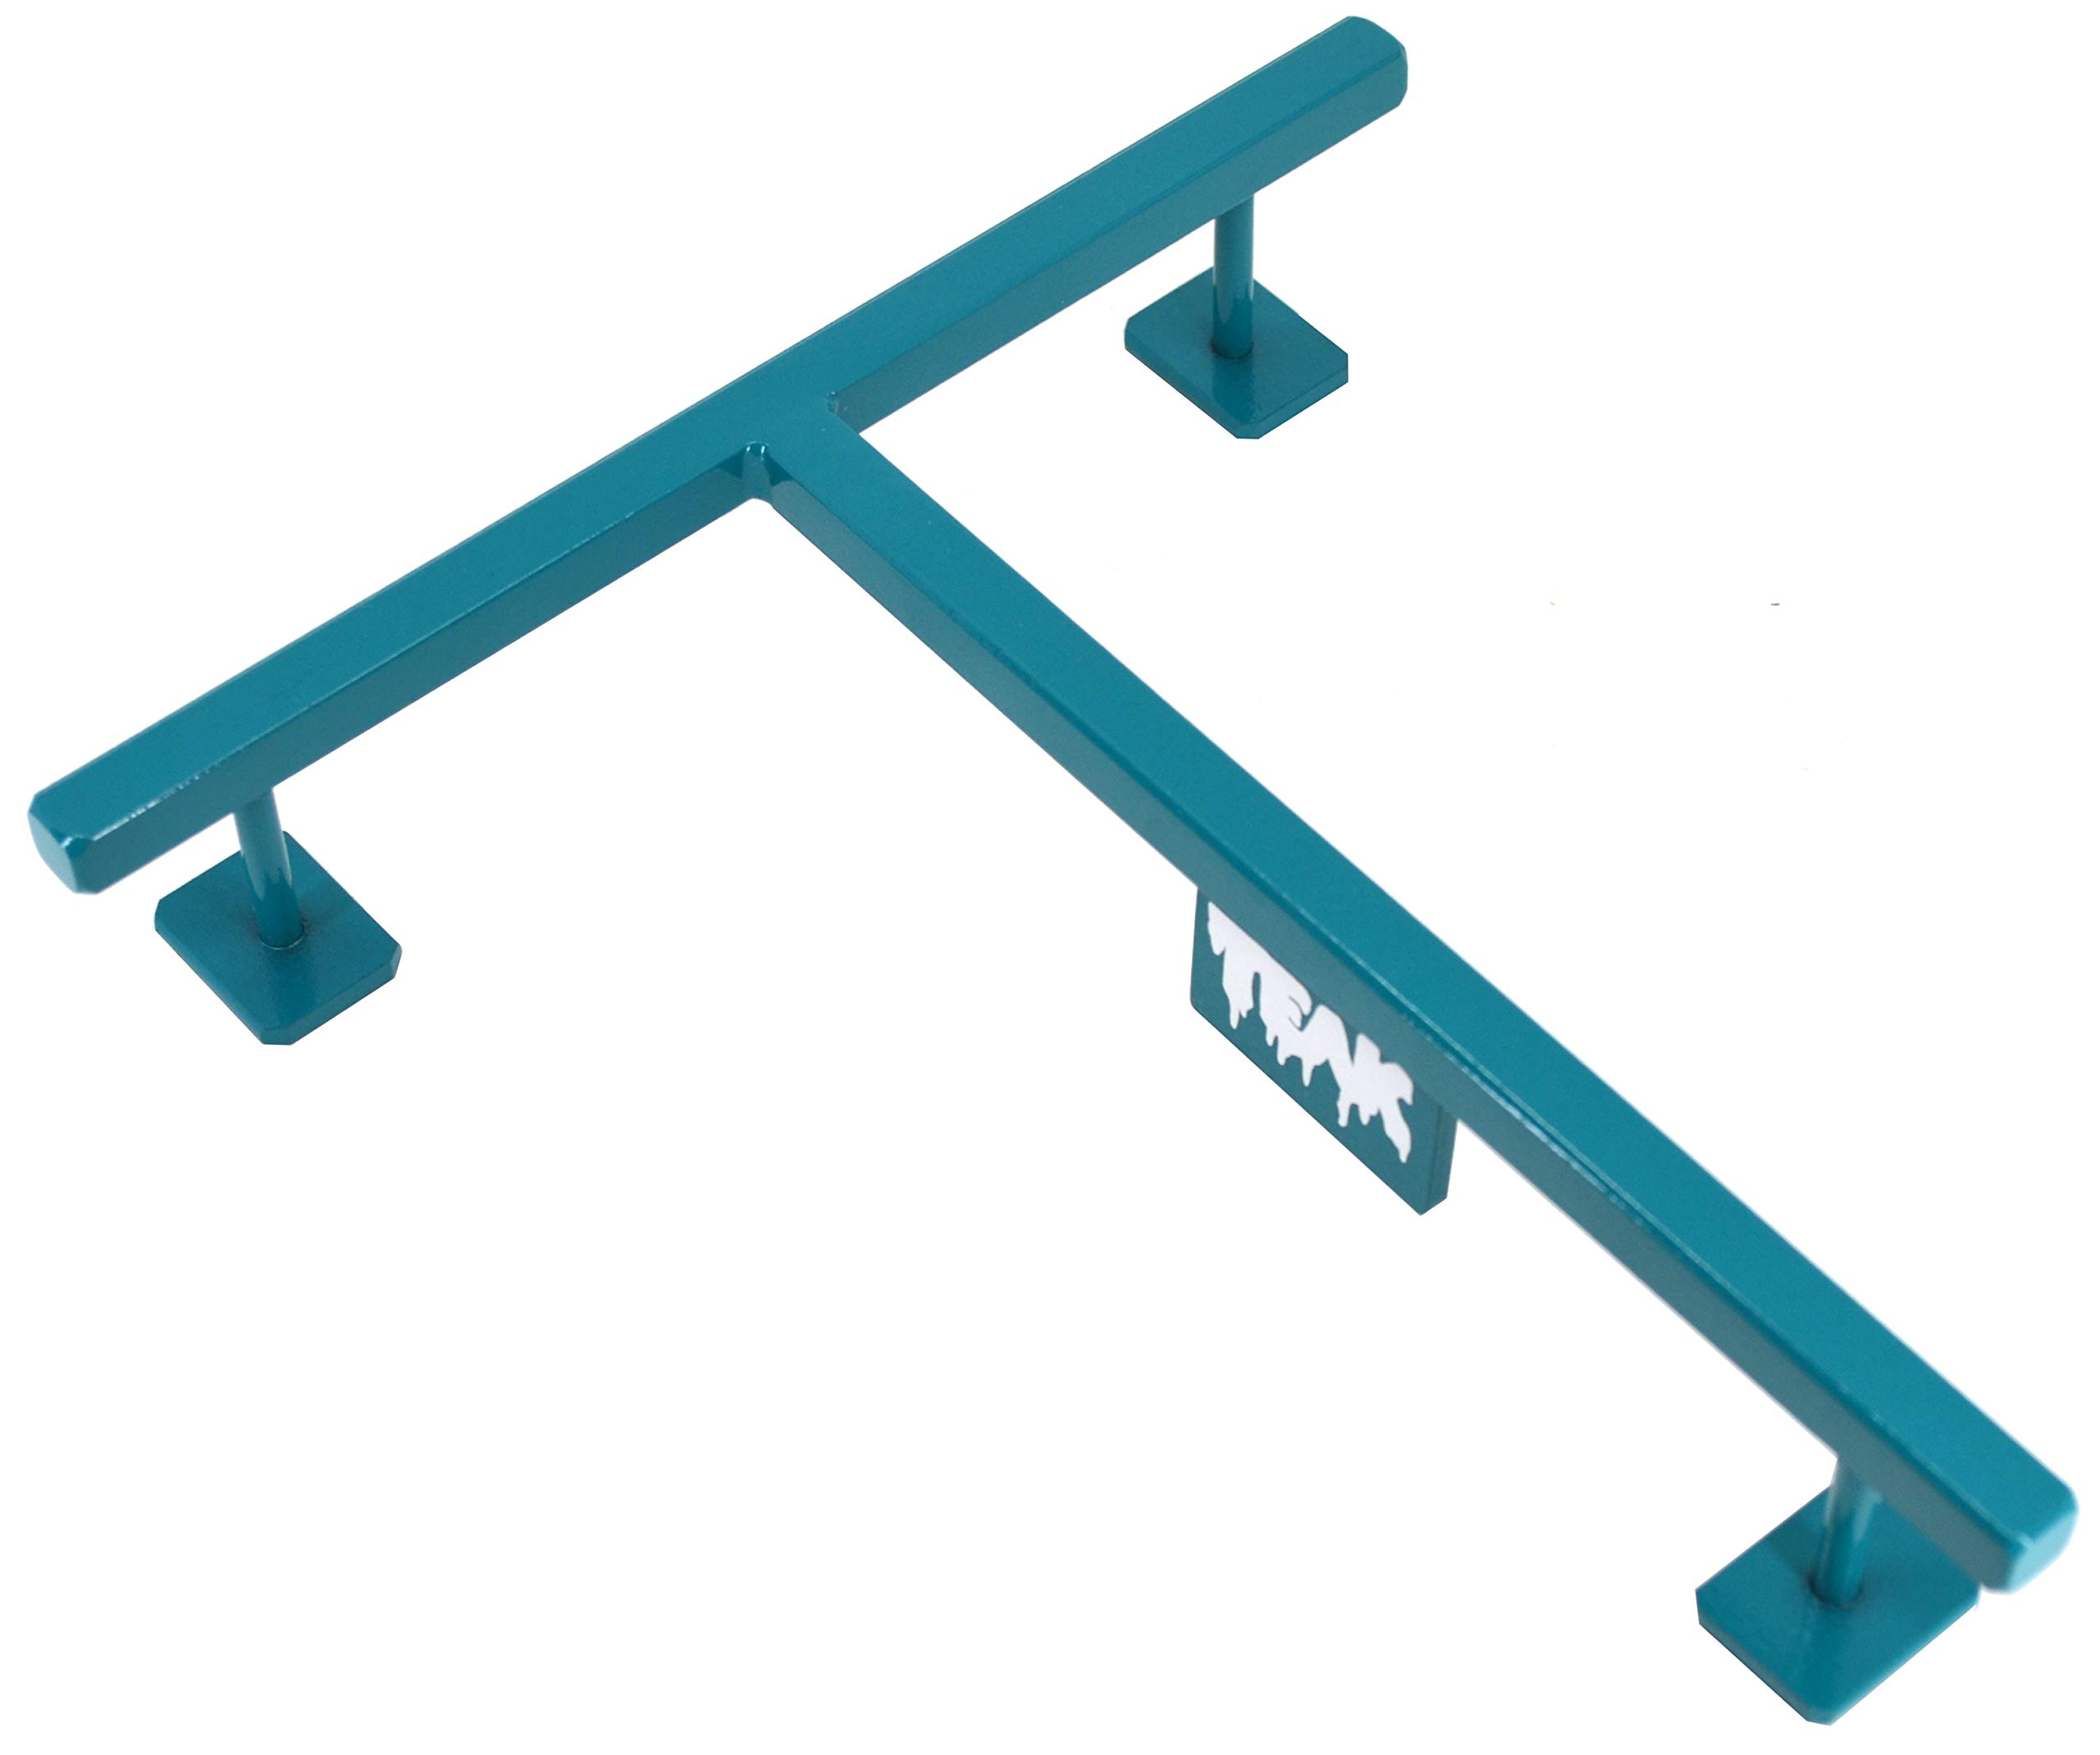 Teak Tuning EMA Collaboration T Rail, Limited Edition Teal Colorway, 10'' Long, 1.5'' Tall by Teak Tuning